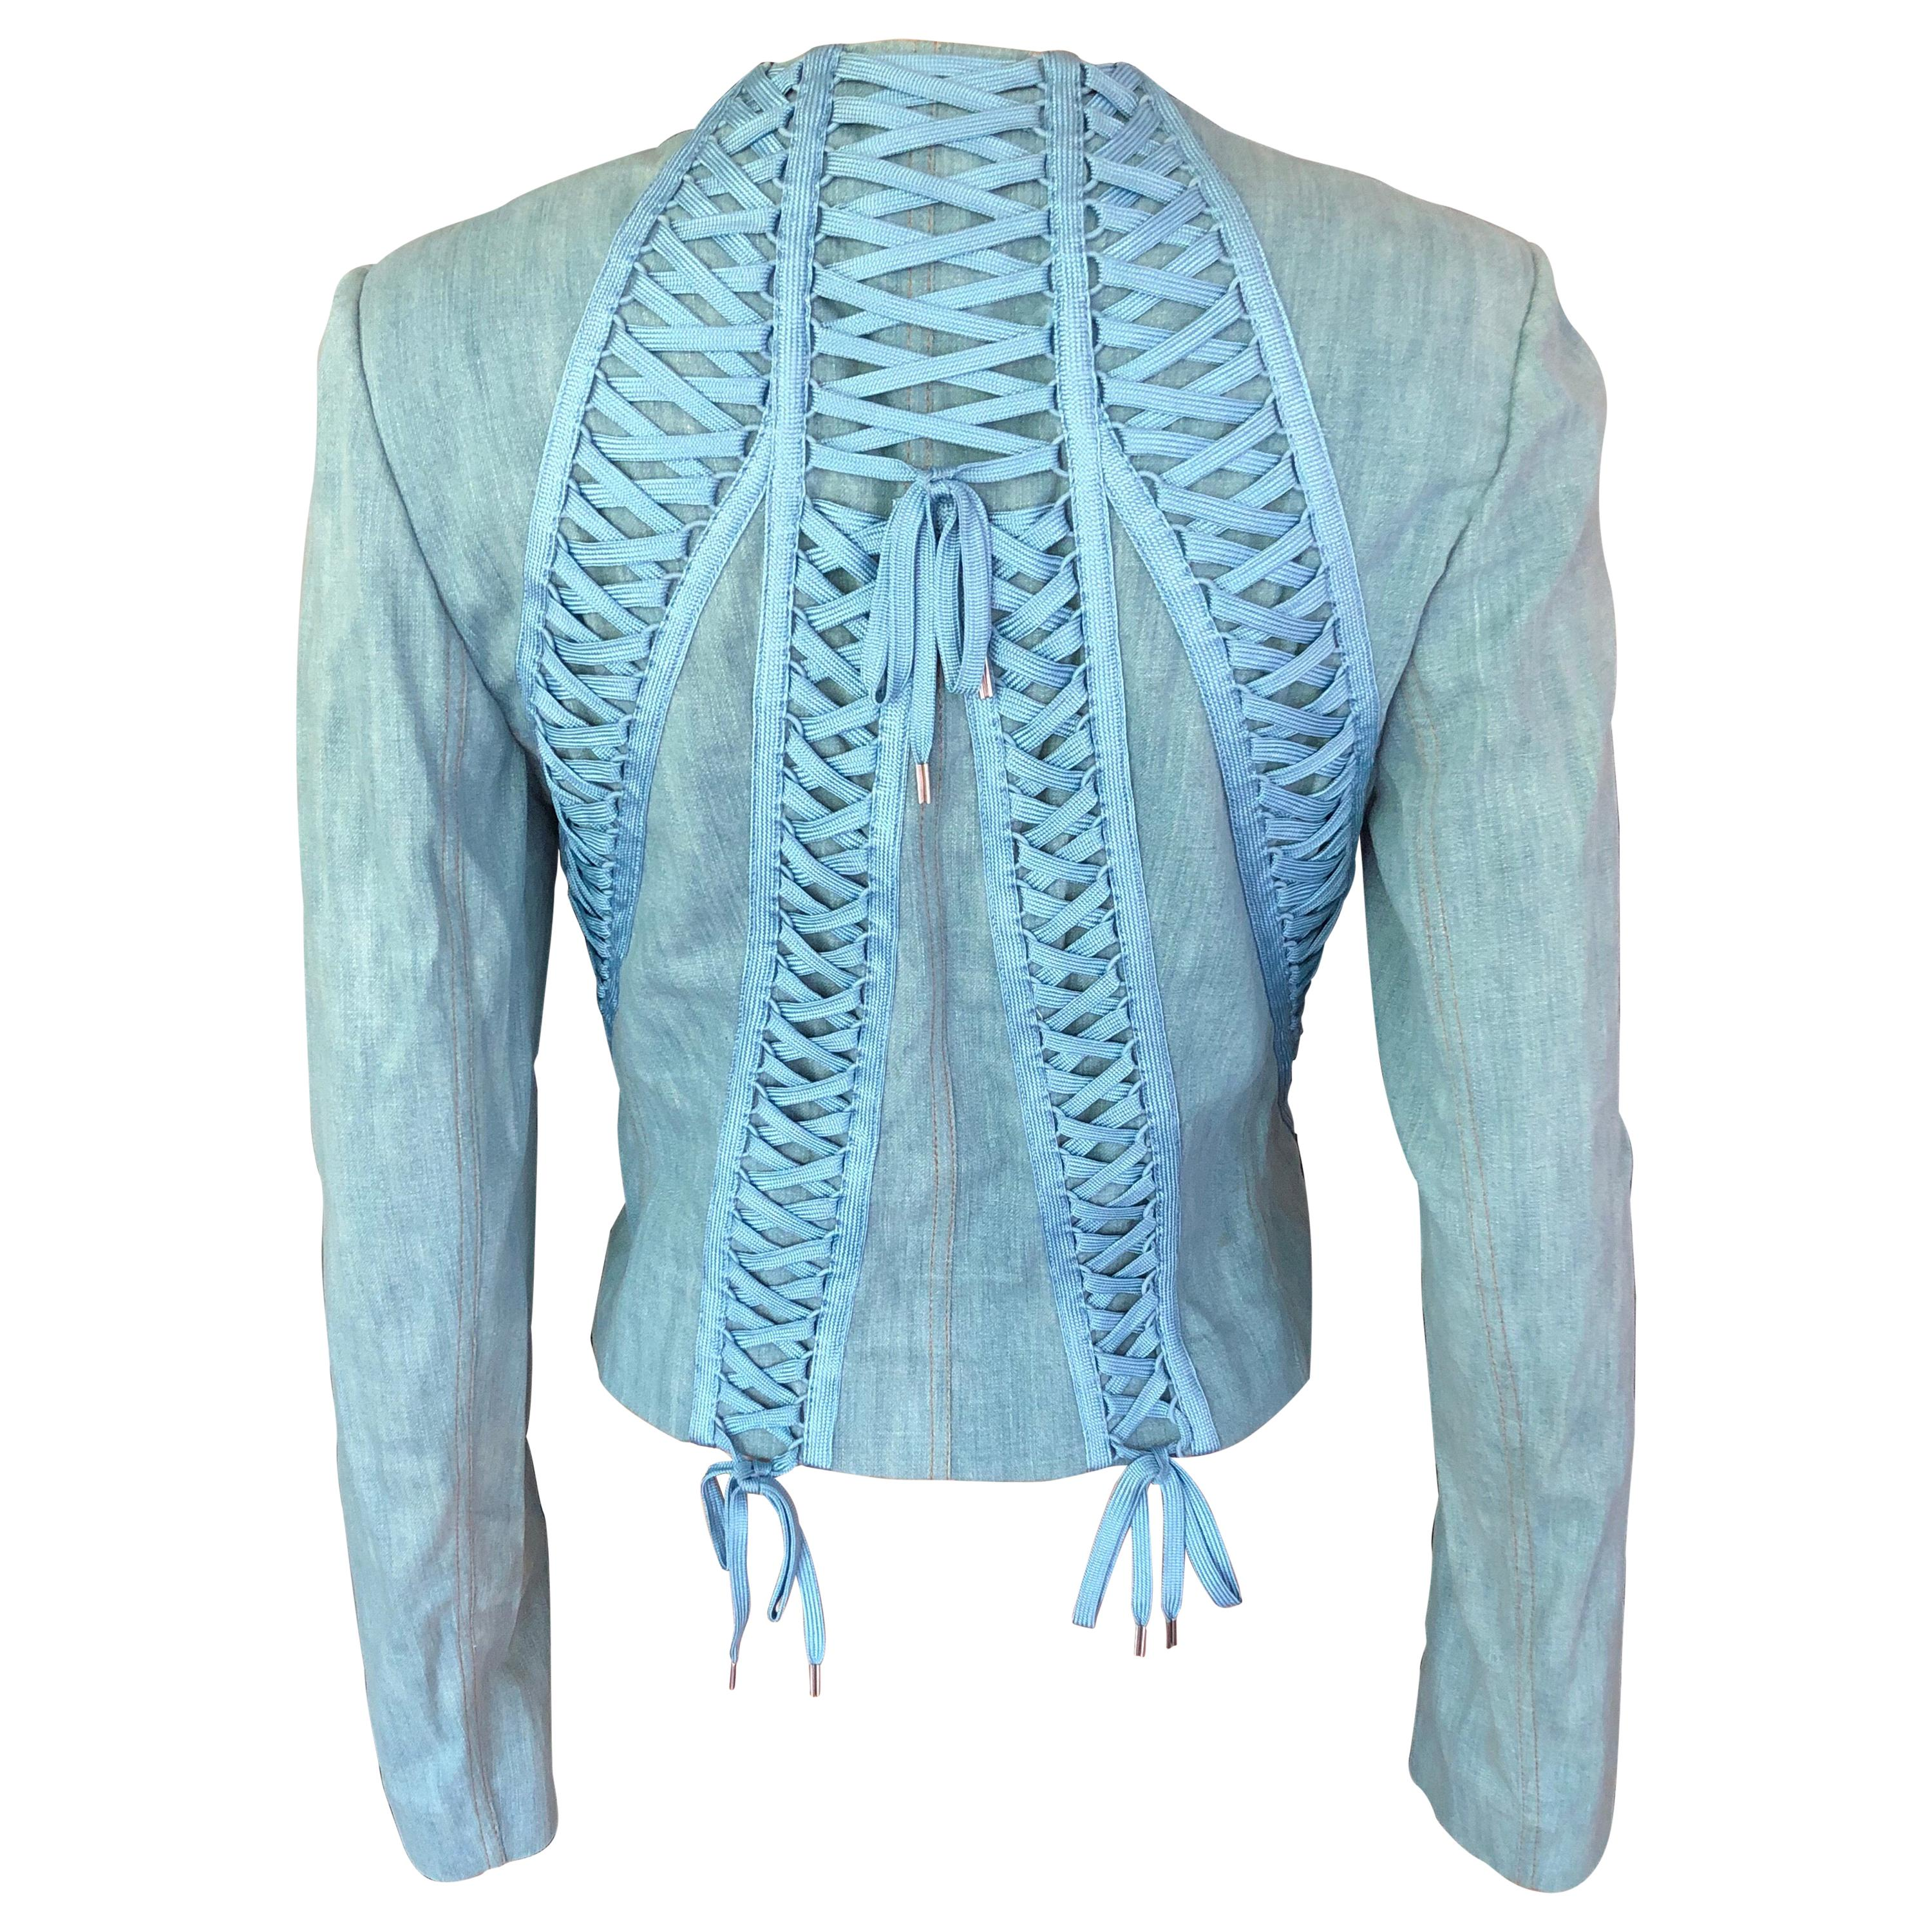 Christian Dior By John Galliano S/S 2002 Lace-Up Denim Jacket